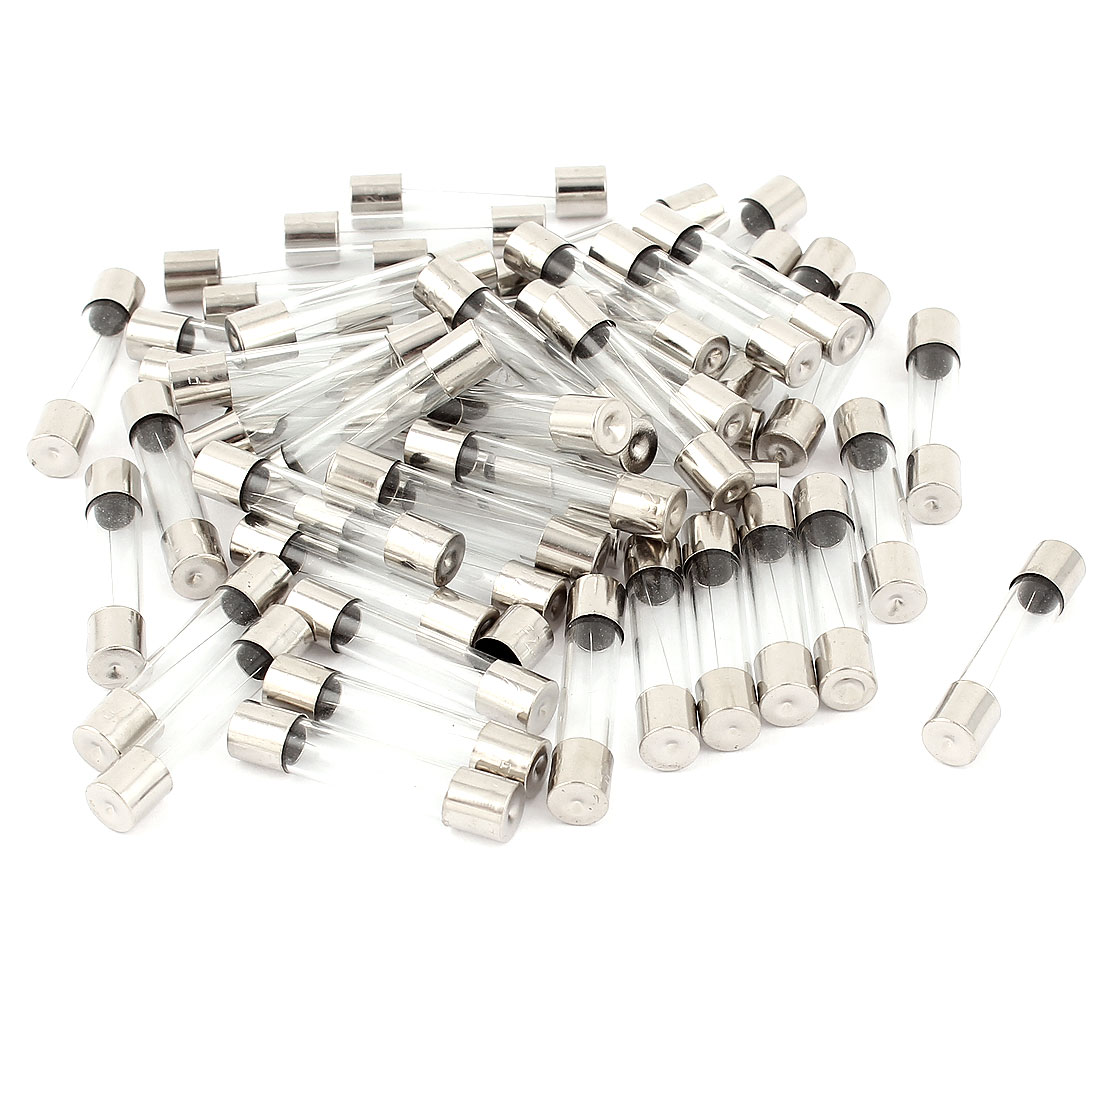 250V 6.3A Fast Quick Blow Low Breaking Glass Tube Fuses 6mm x 30mm 50 Pcs